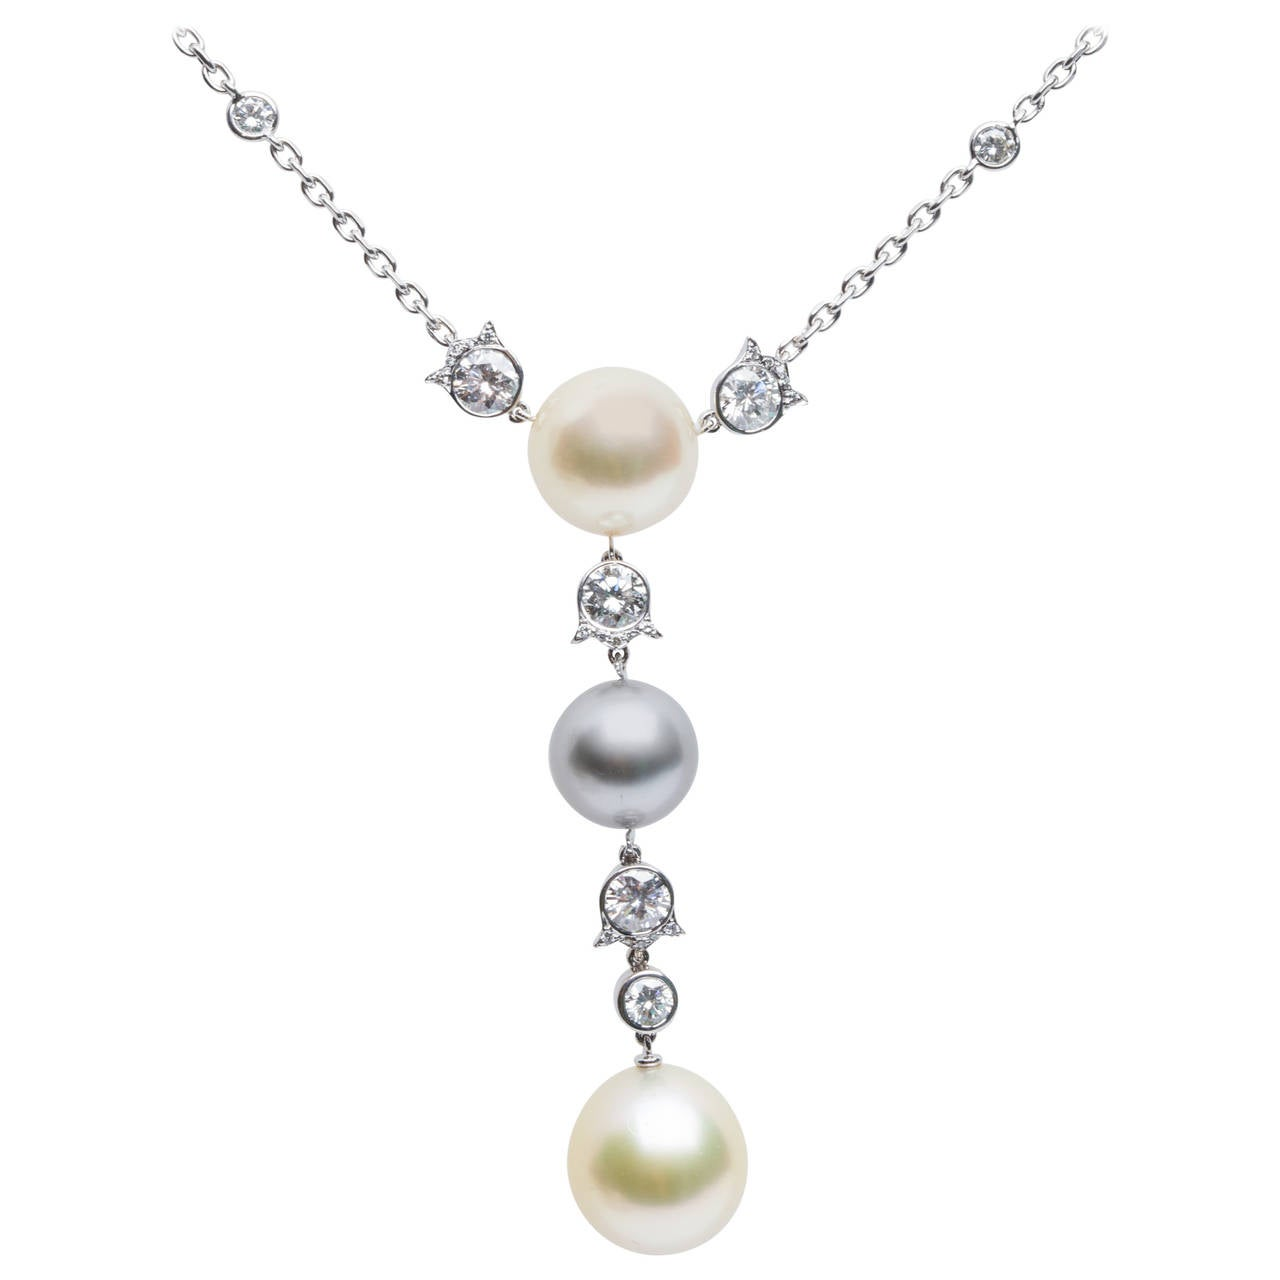 Cartier Himalia Pearl and Diamond Necklace